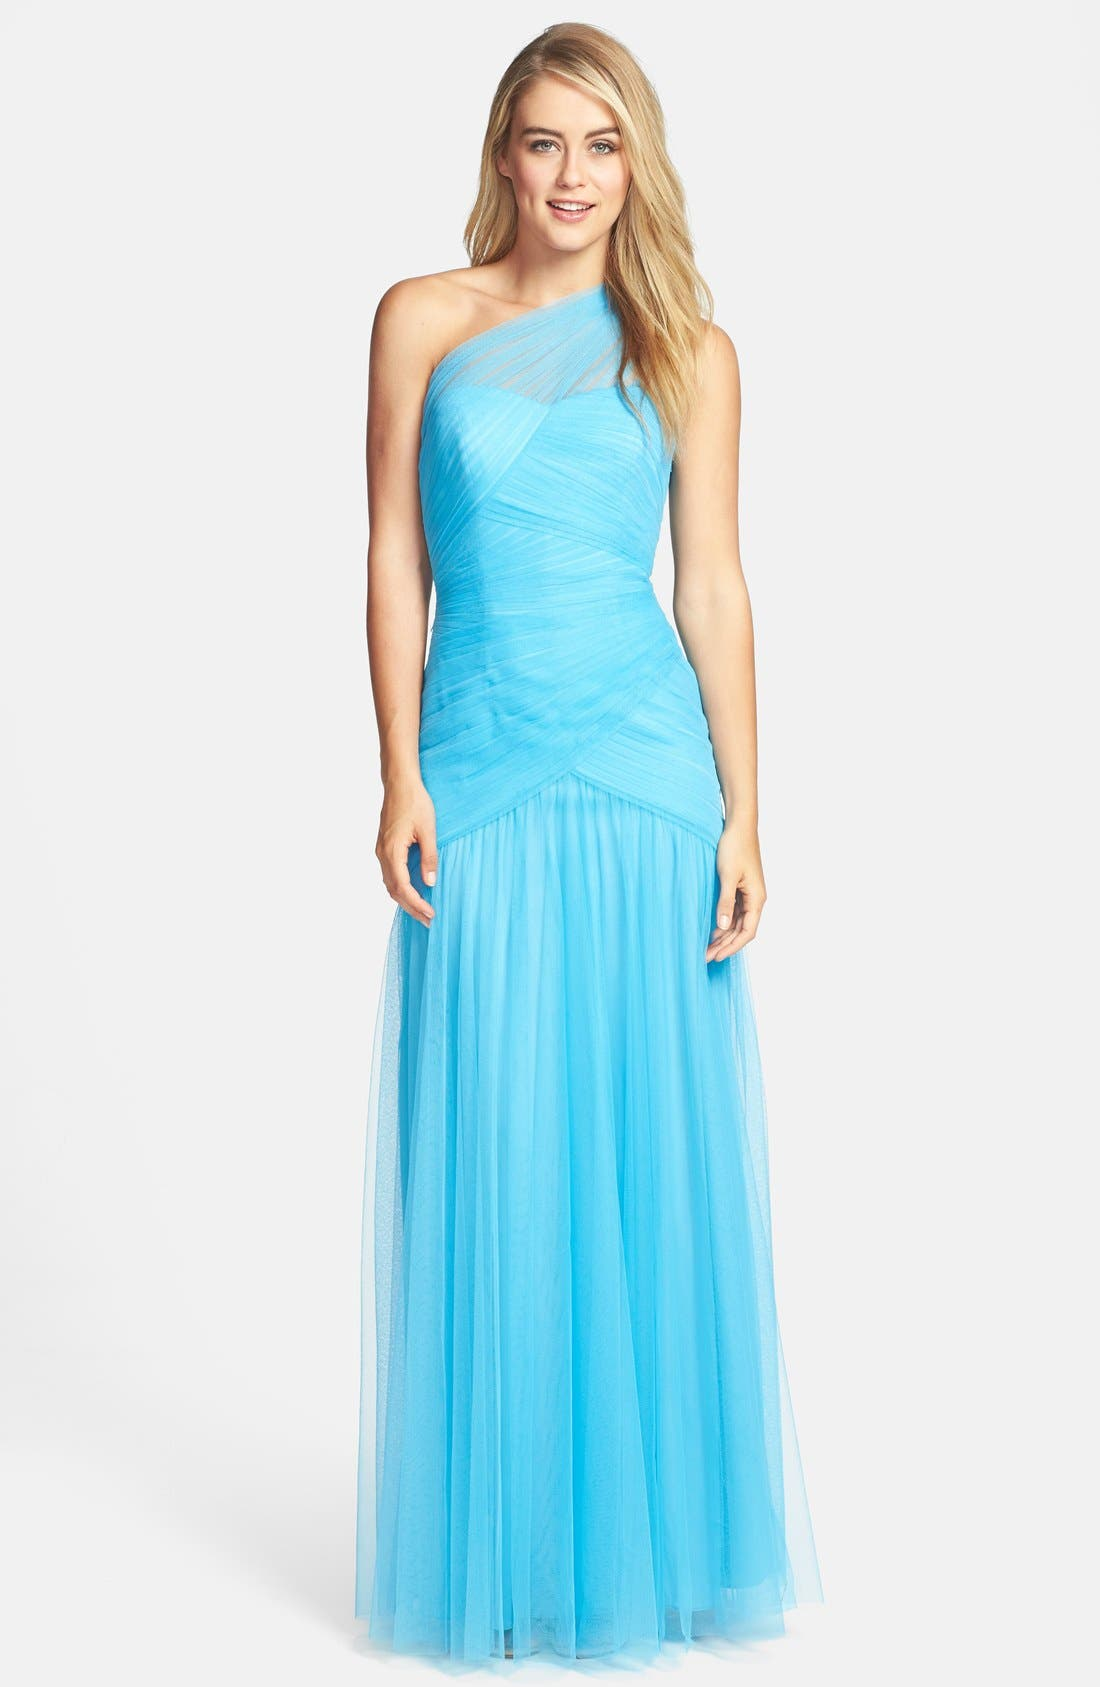 Alternate Image 1 Selected - ML Monique Lhuillier Bridesmaids Shirred One-Shoulder Tulle Gown (Nordstrom Exclusive)